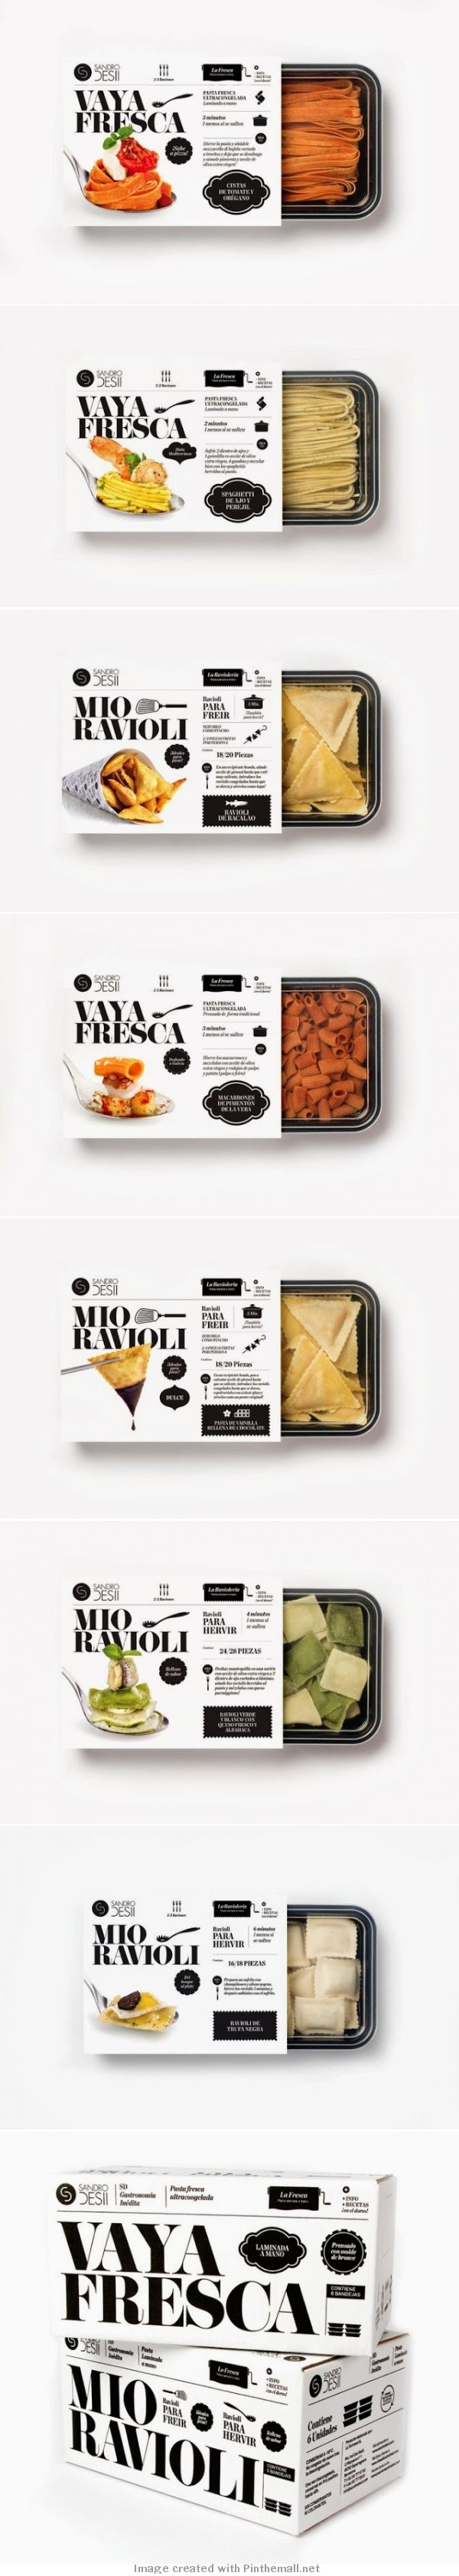 Sandro Desii by Lo Siento. Beautiful package design. #Branding #PackageDesign #GraphicDesign